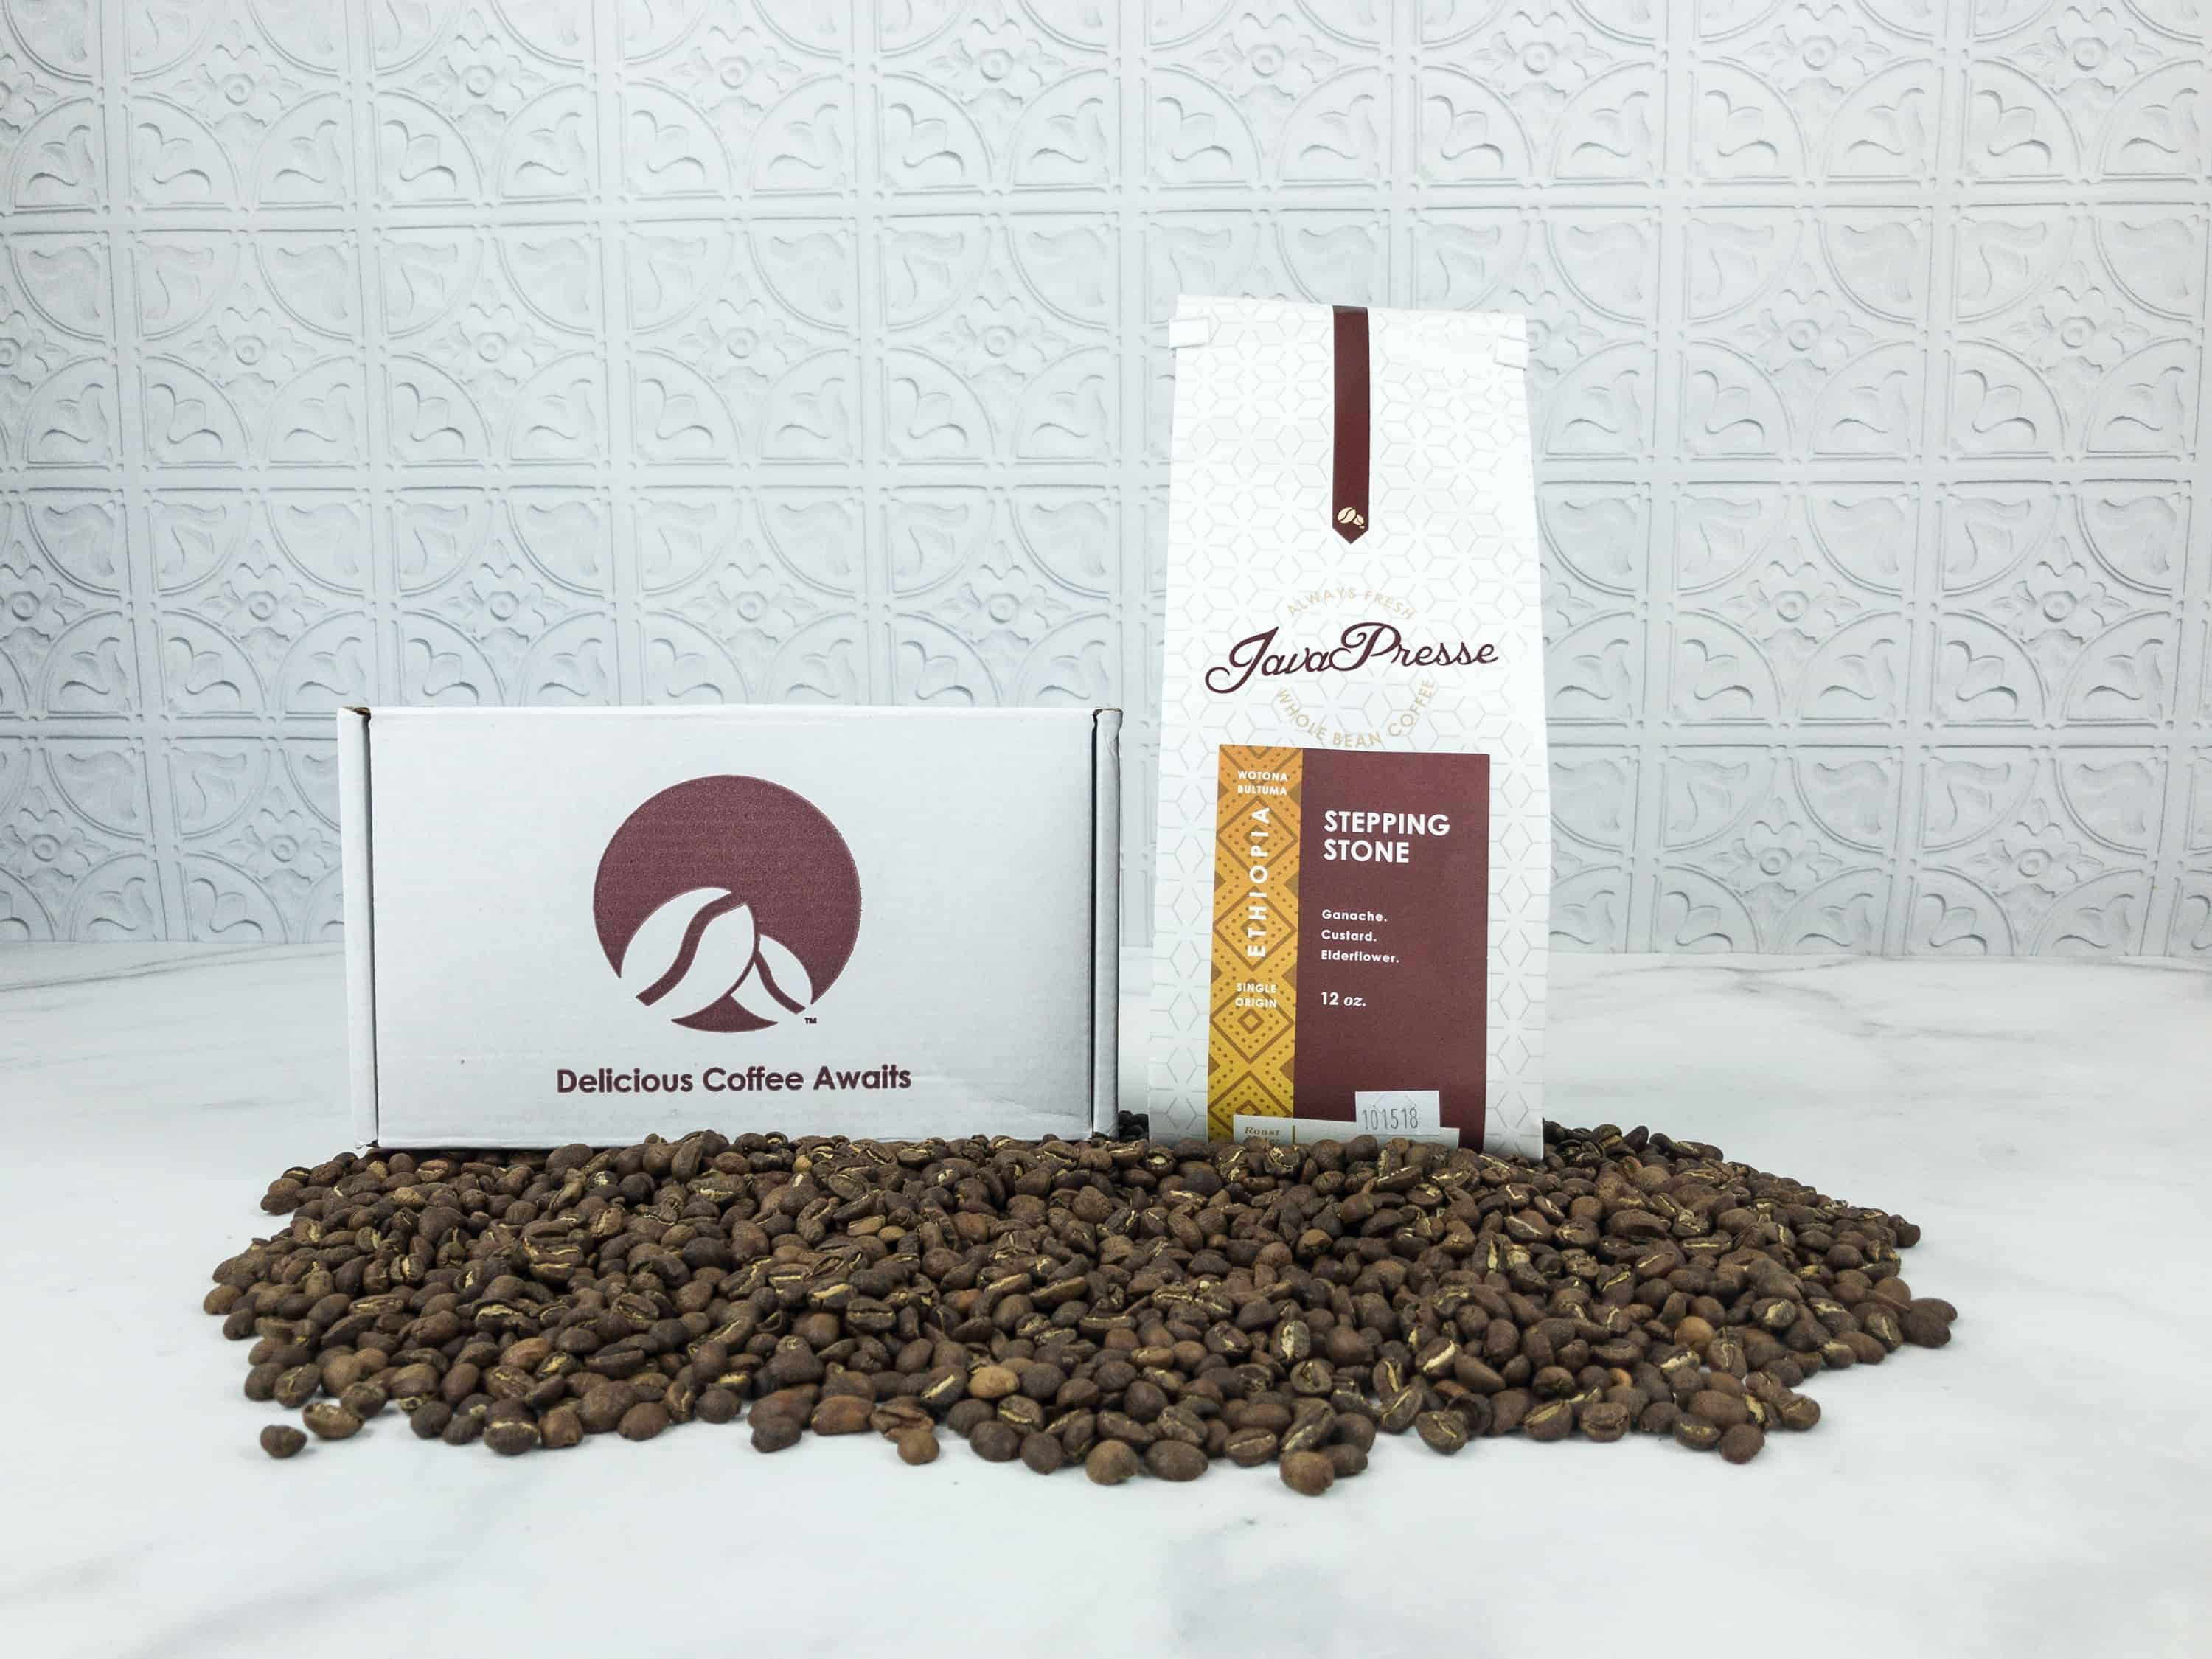 Java Presse Coffee Of The Month Club Subscription boxes